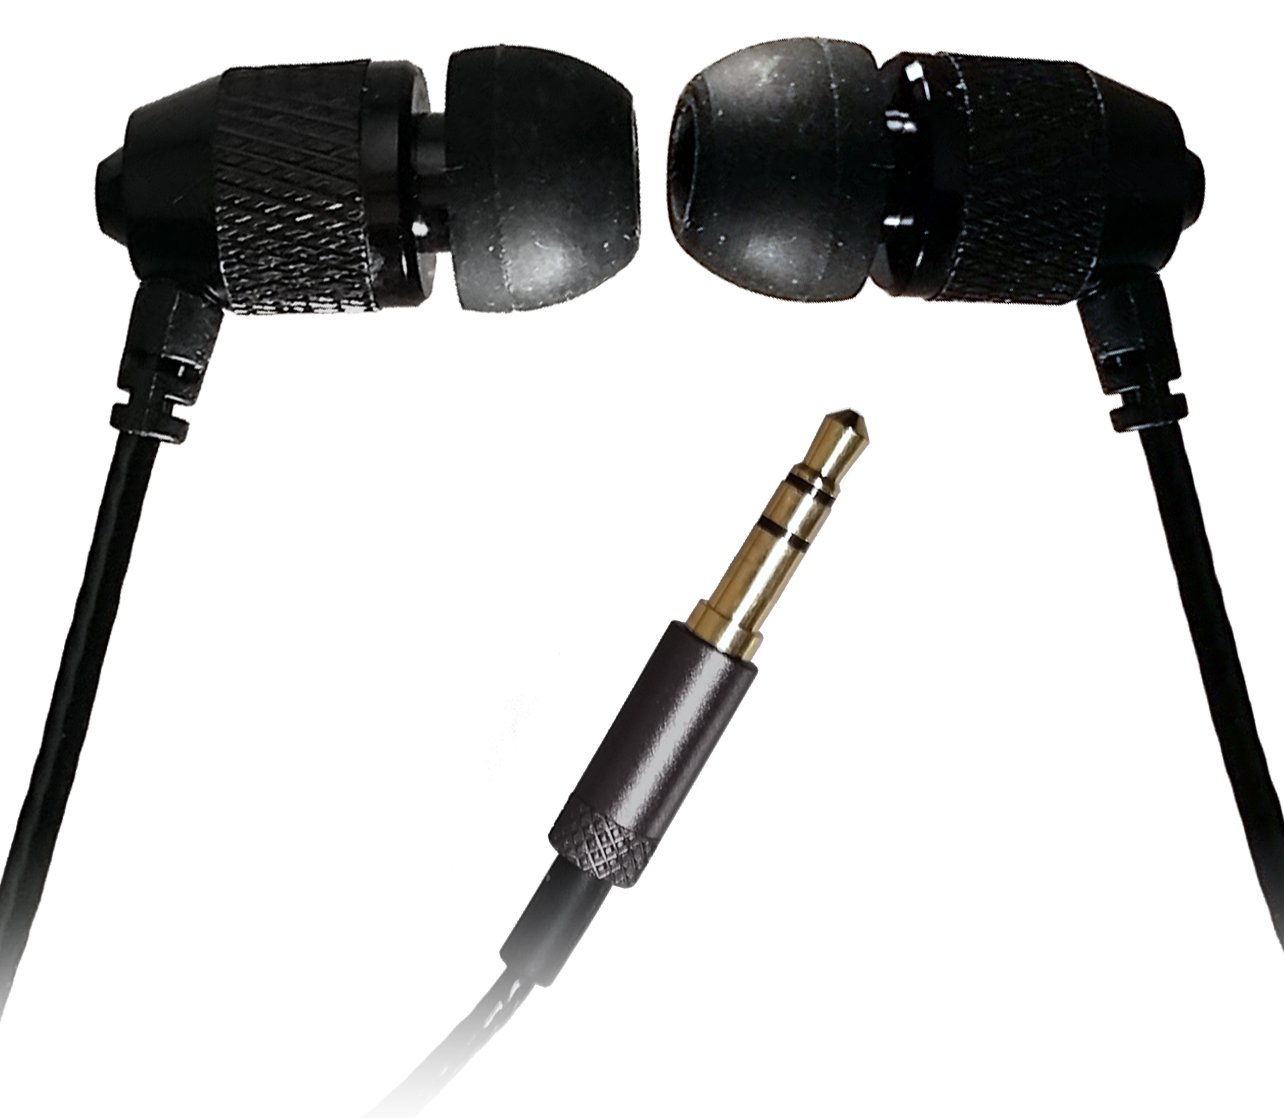 Short Buds - 15'' Cord Stereo Earbuds with Nylon-reinforced Cords for clip-on music players by Far End Gear